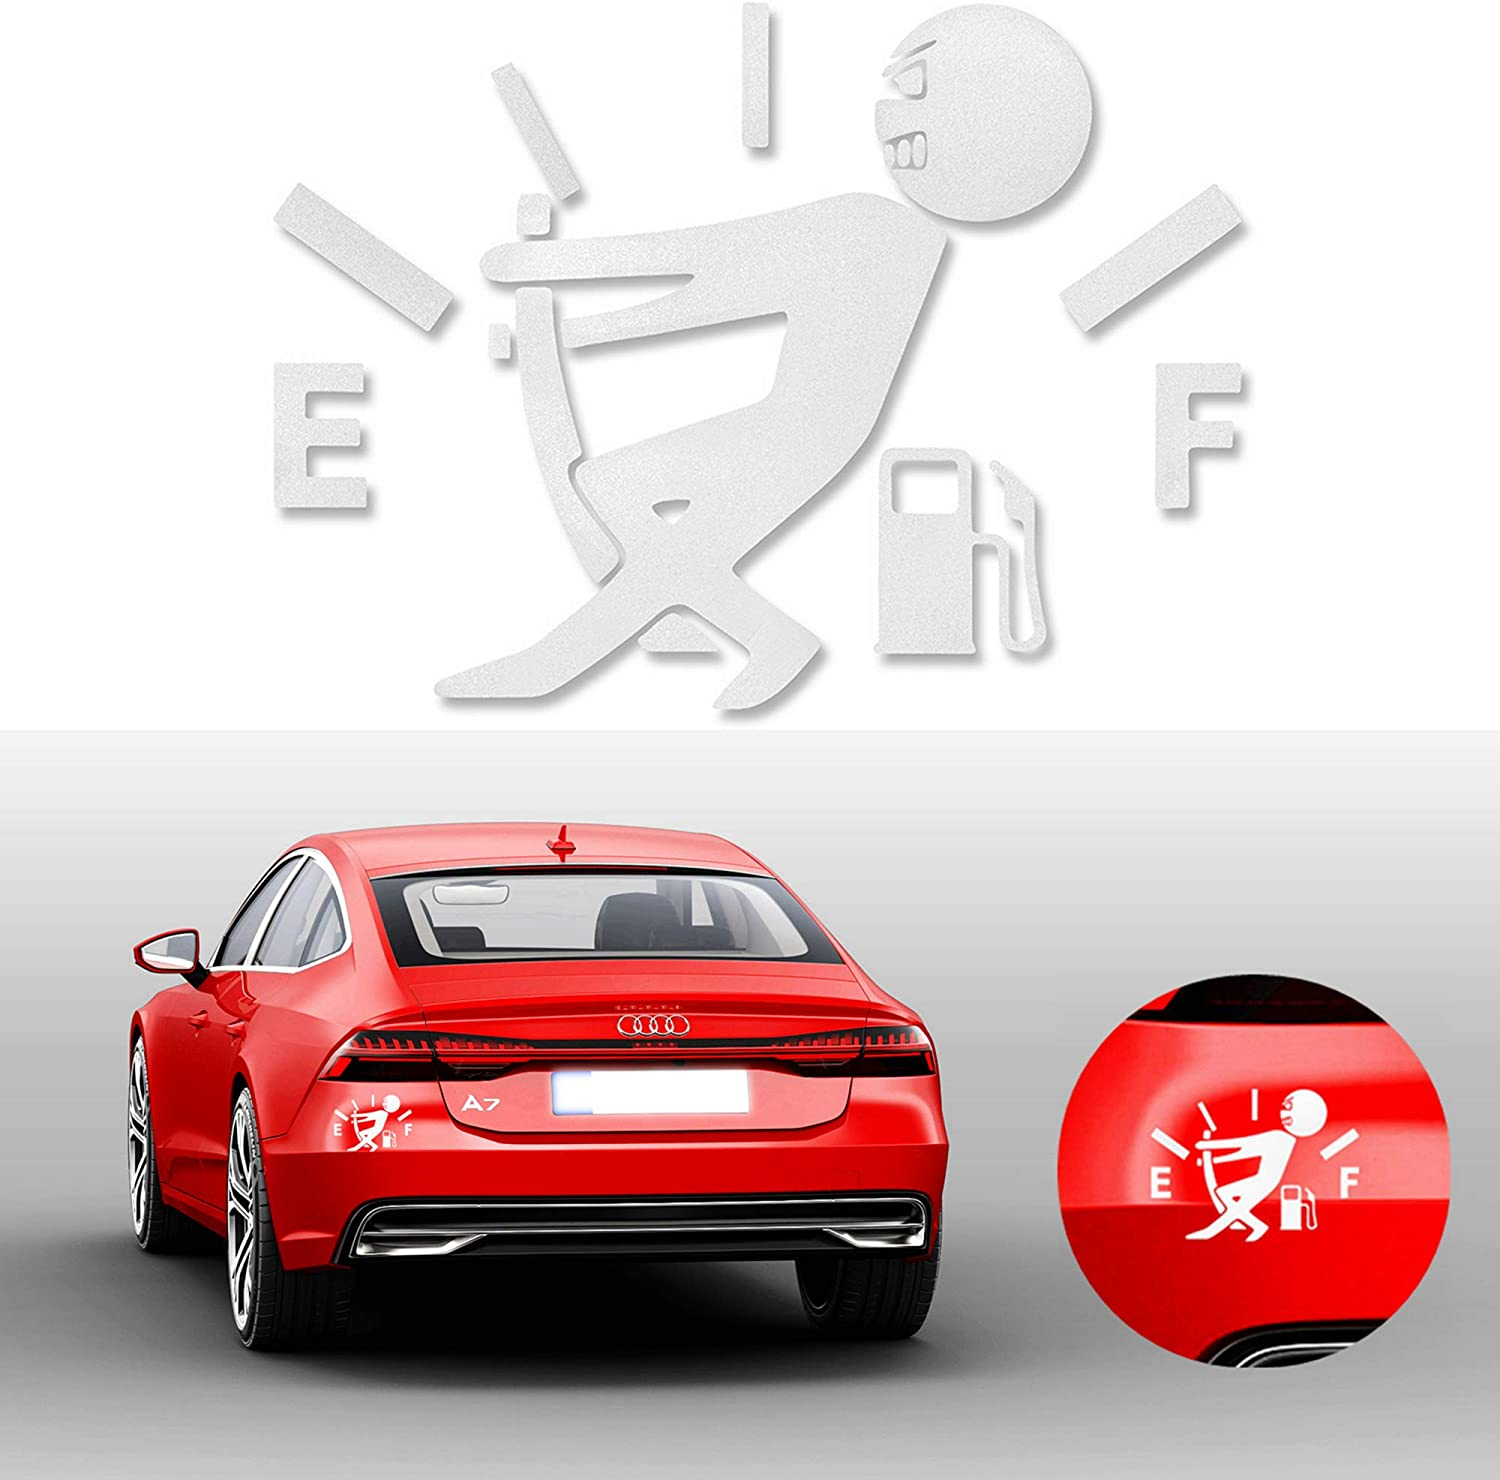 White Grebest Car Sticker External Decoration Car Sticker 2Pcs Funny Fuel Gauge Car Body Stickers Reflective Waterproof Decals Decoration